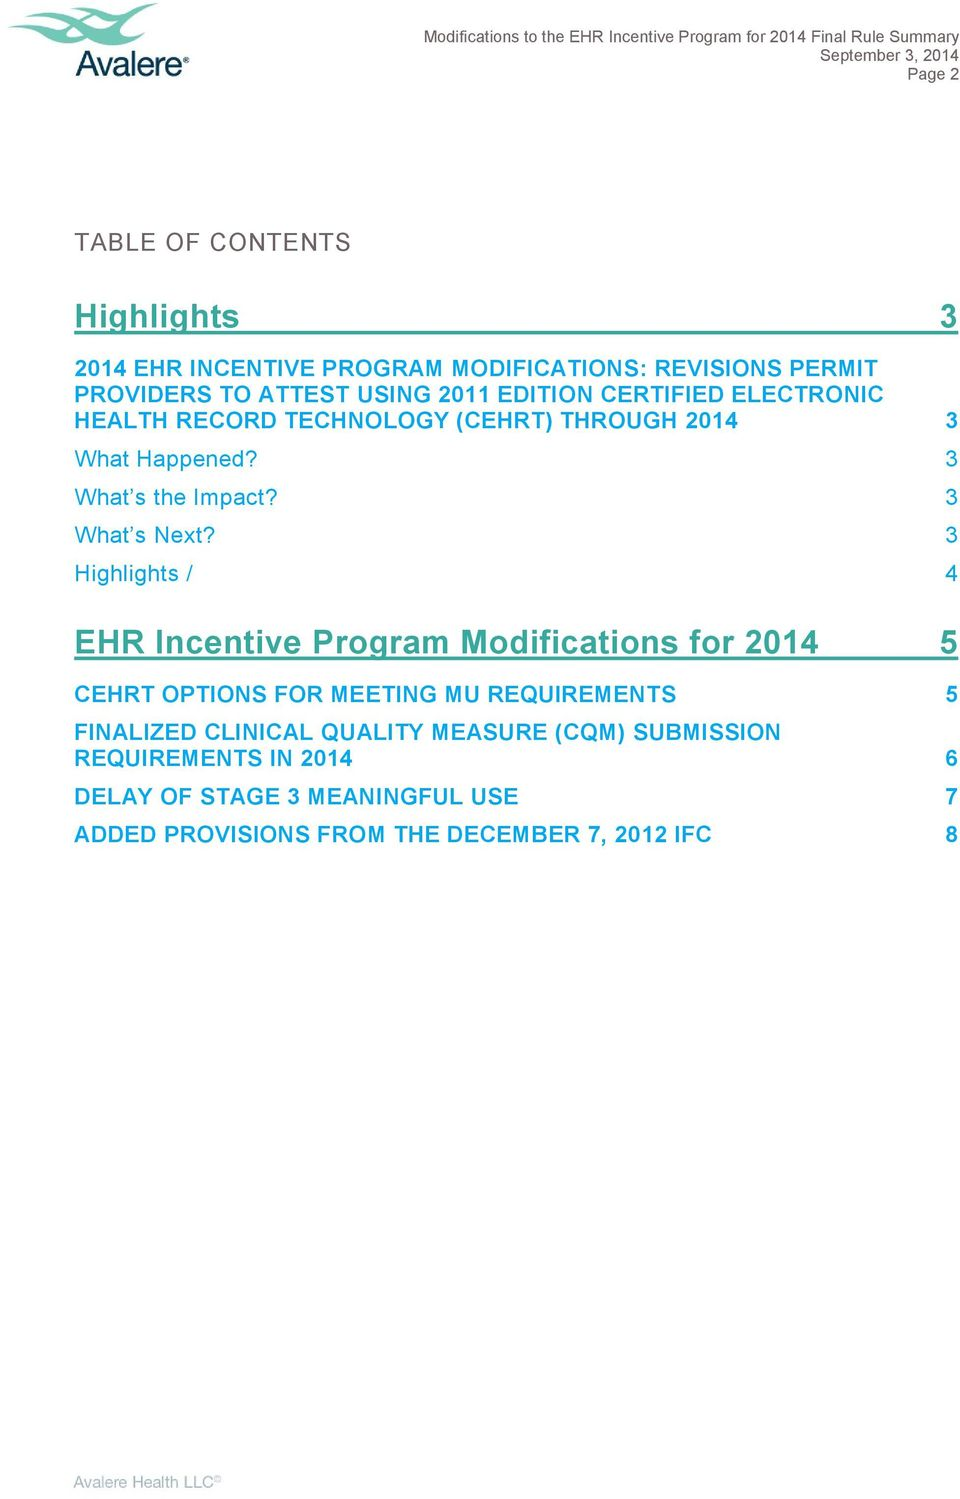 3 Highlights / 4 EHR Incentive Program Modifications for 2014 5 CEHRT OPTIONS FOR MEETING MU REQUIREMENTS 5 FINALIZED CLINICAL